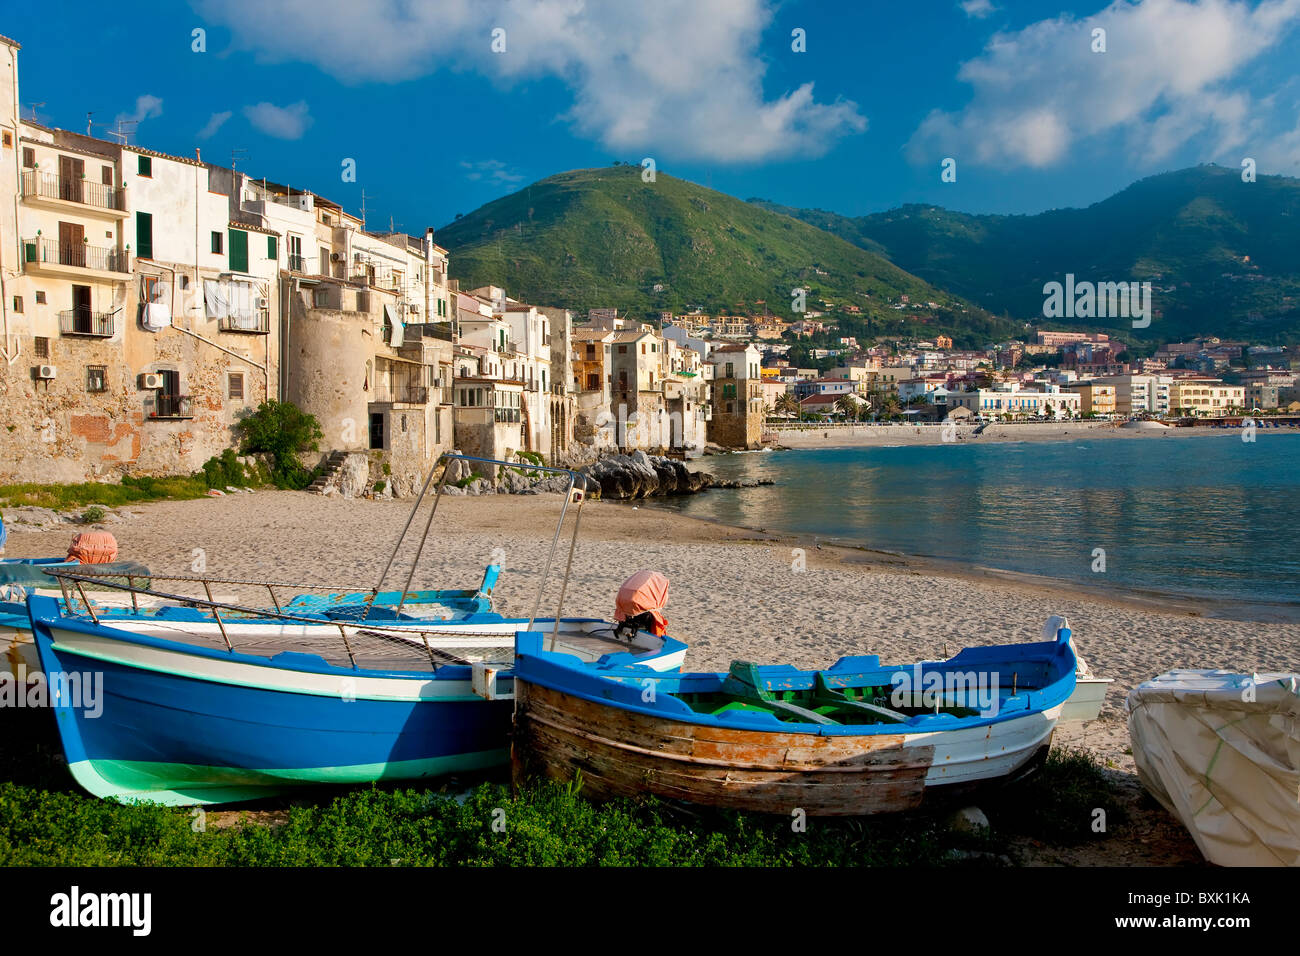 Boats on beach, Cefalu, North coast, Sicily Italy - Stock Image